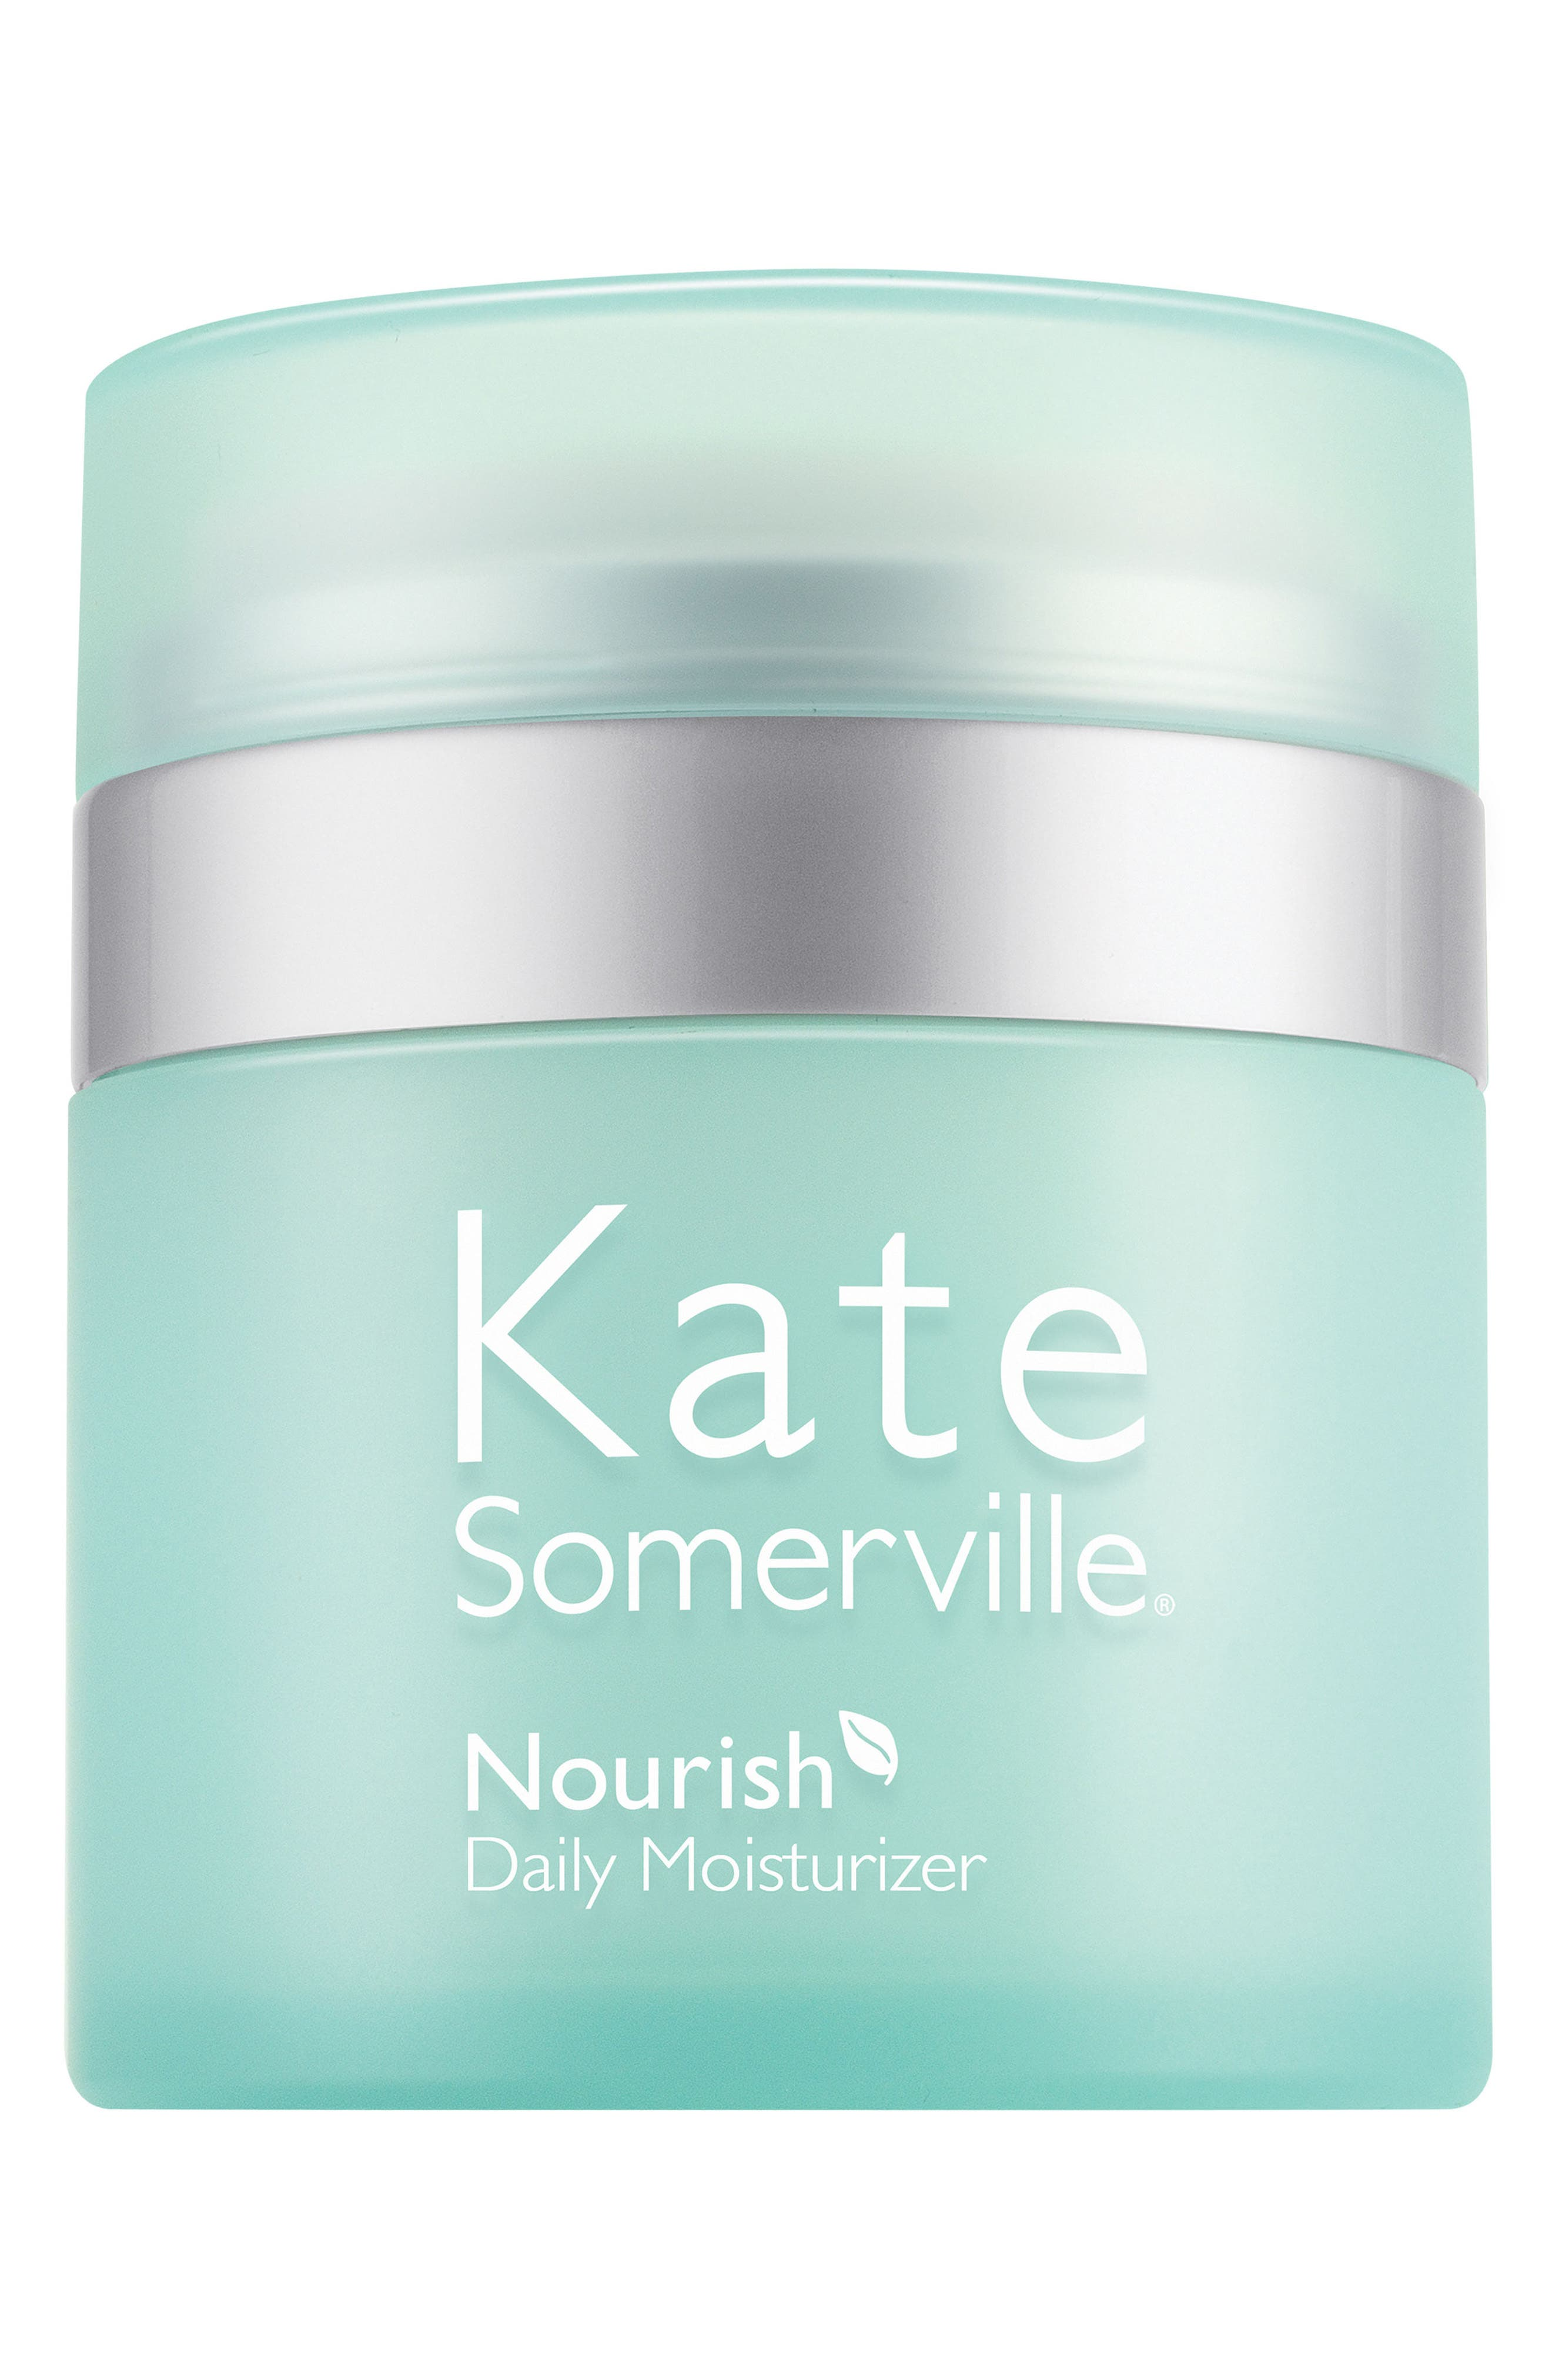 Kate Somerville® Nourish Daily Moisturizer